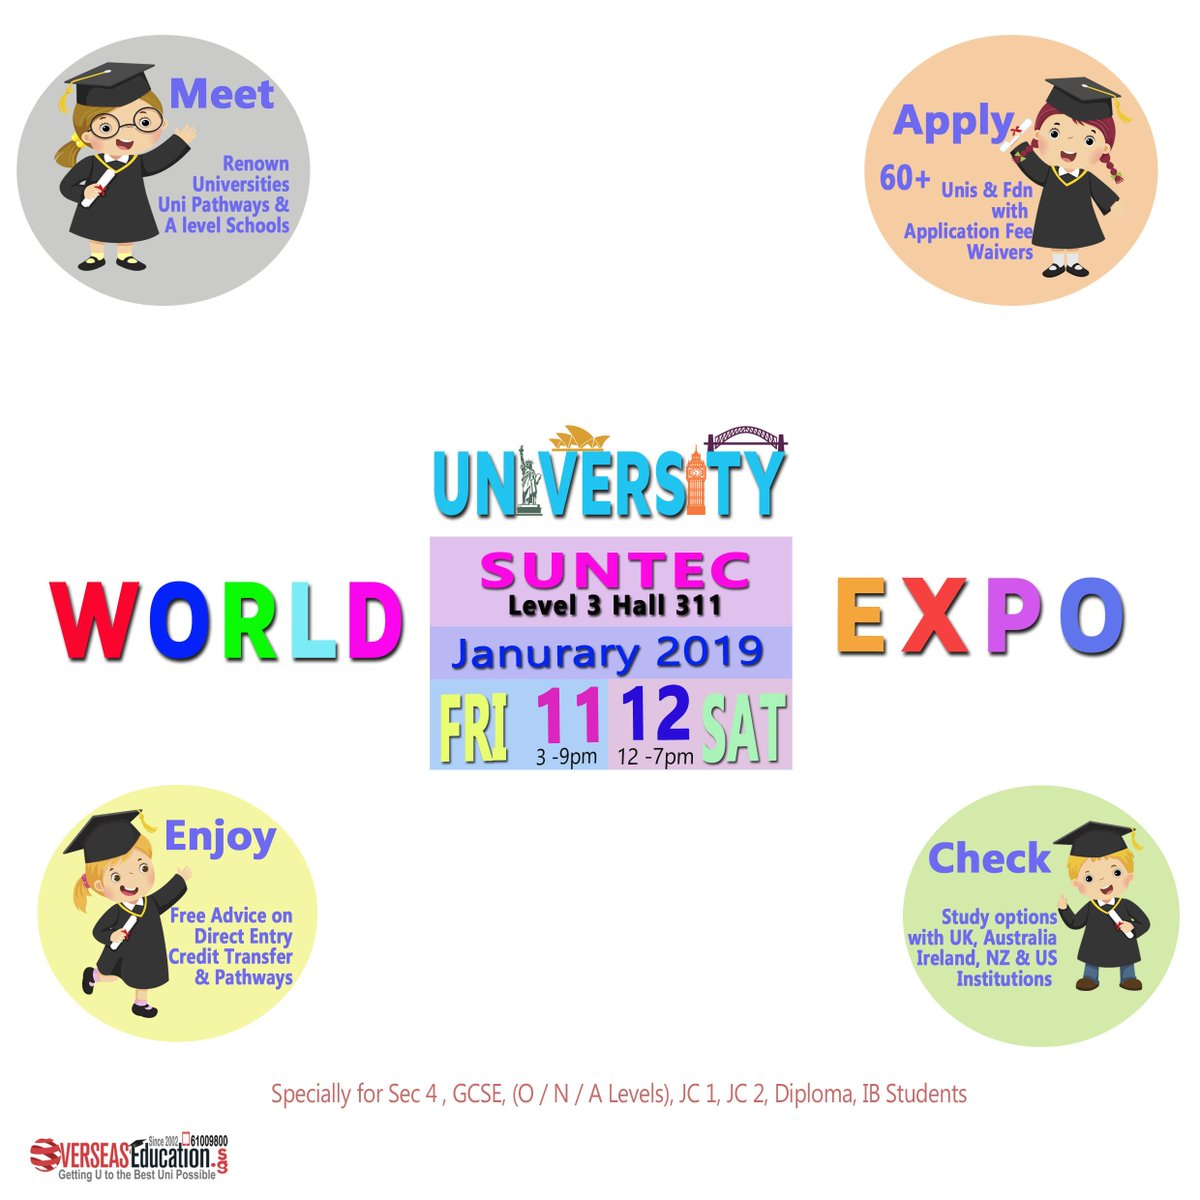 Visit 2019 World Uni Expo on Fri 11 Jan 3-9pm & Sat 12 Jan 12-7pm at Suntec Level 3 Hall 311. Find out more from UK, Australia, NZ & US Unis Staff & our Senior Advisors on Direct and Pathway entry. Call 61009800 or visit http://expo.OverseasEducation.sg #instasg #mothershipsg #sggag #unipic.twitter.com/h0HgIHAWIE